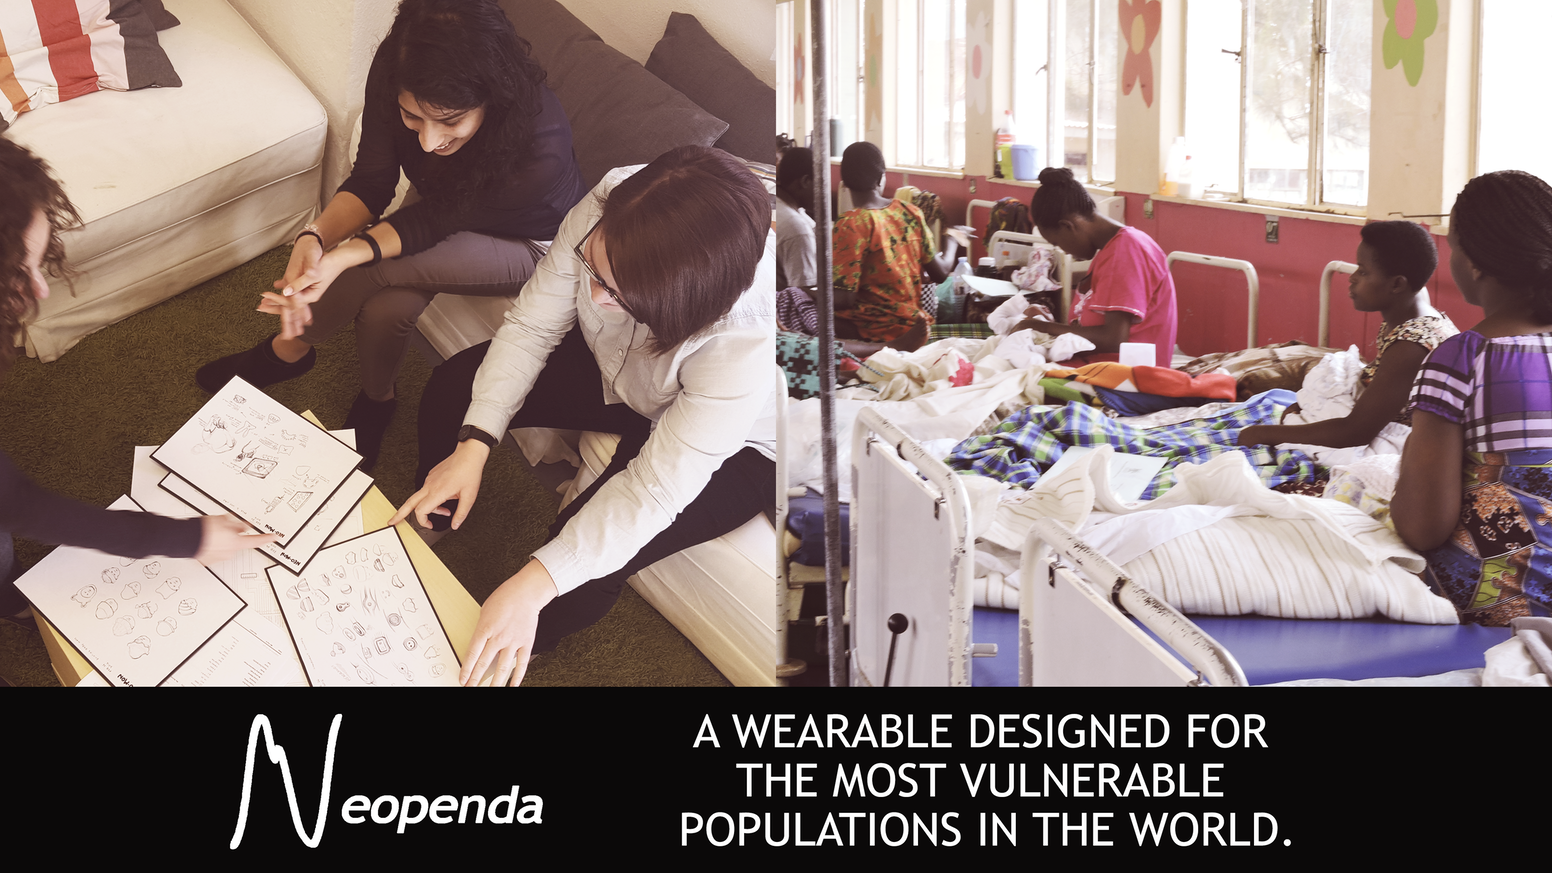 Neopenda is a wearable designed for one of the most vulnerable populations on the planet: newborns in developing countries.